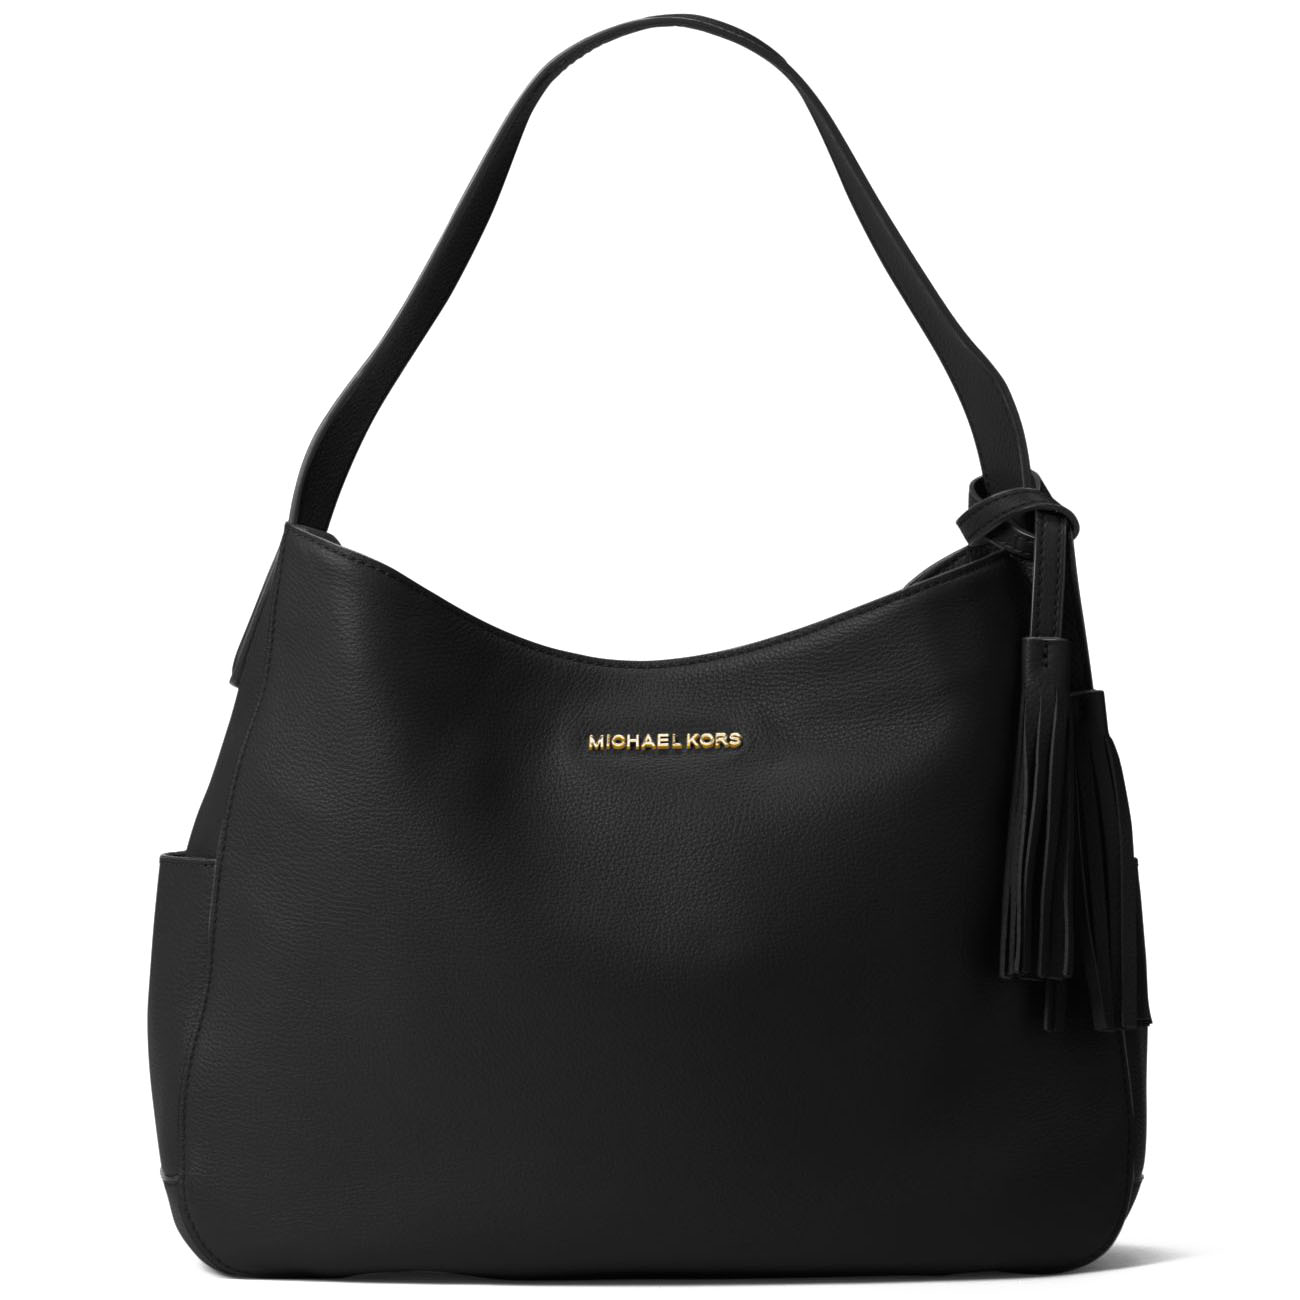 Michael Kors Ashbury Large Slouchy Leather Shoulder Bag Black # 30T7GABL3L